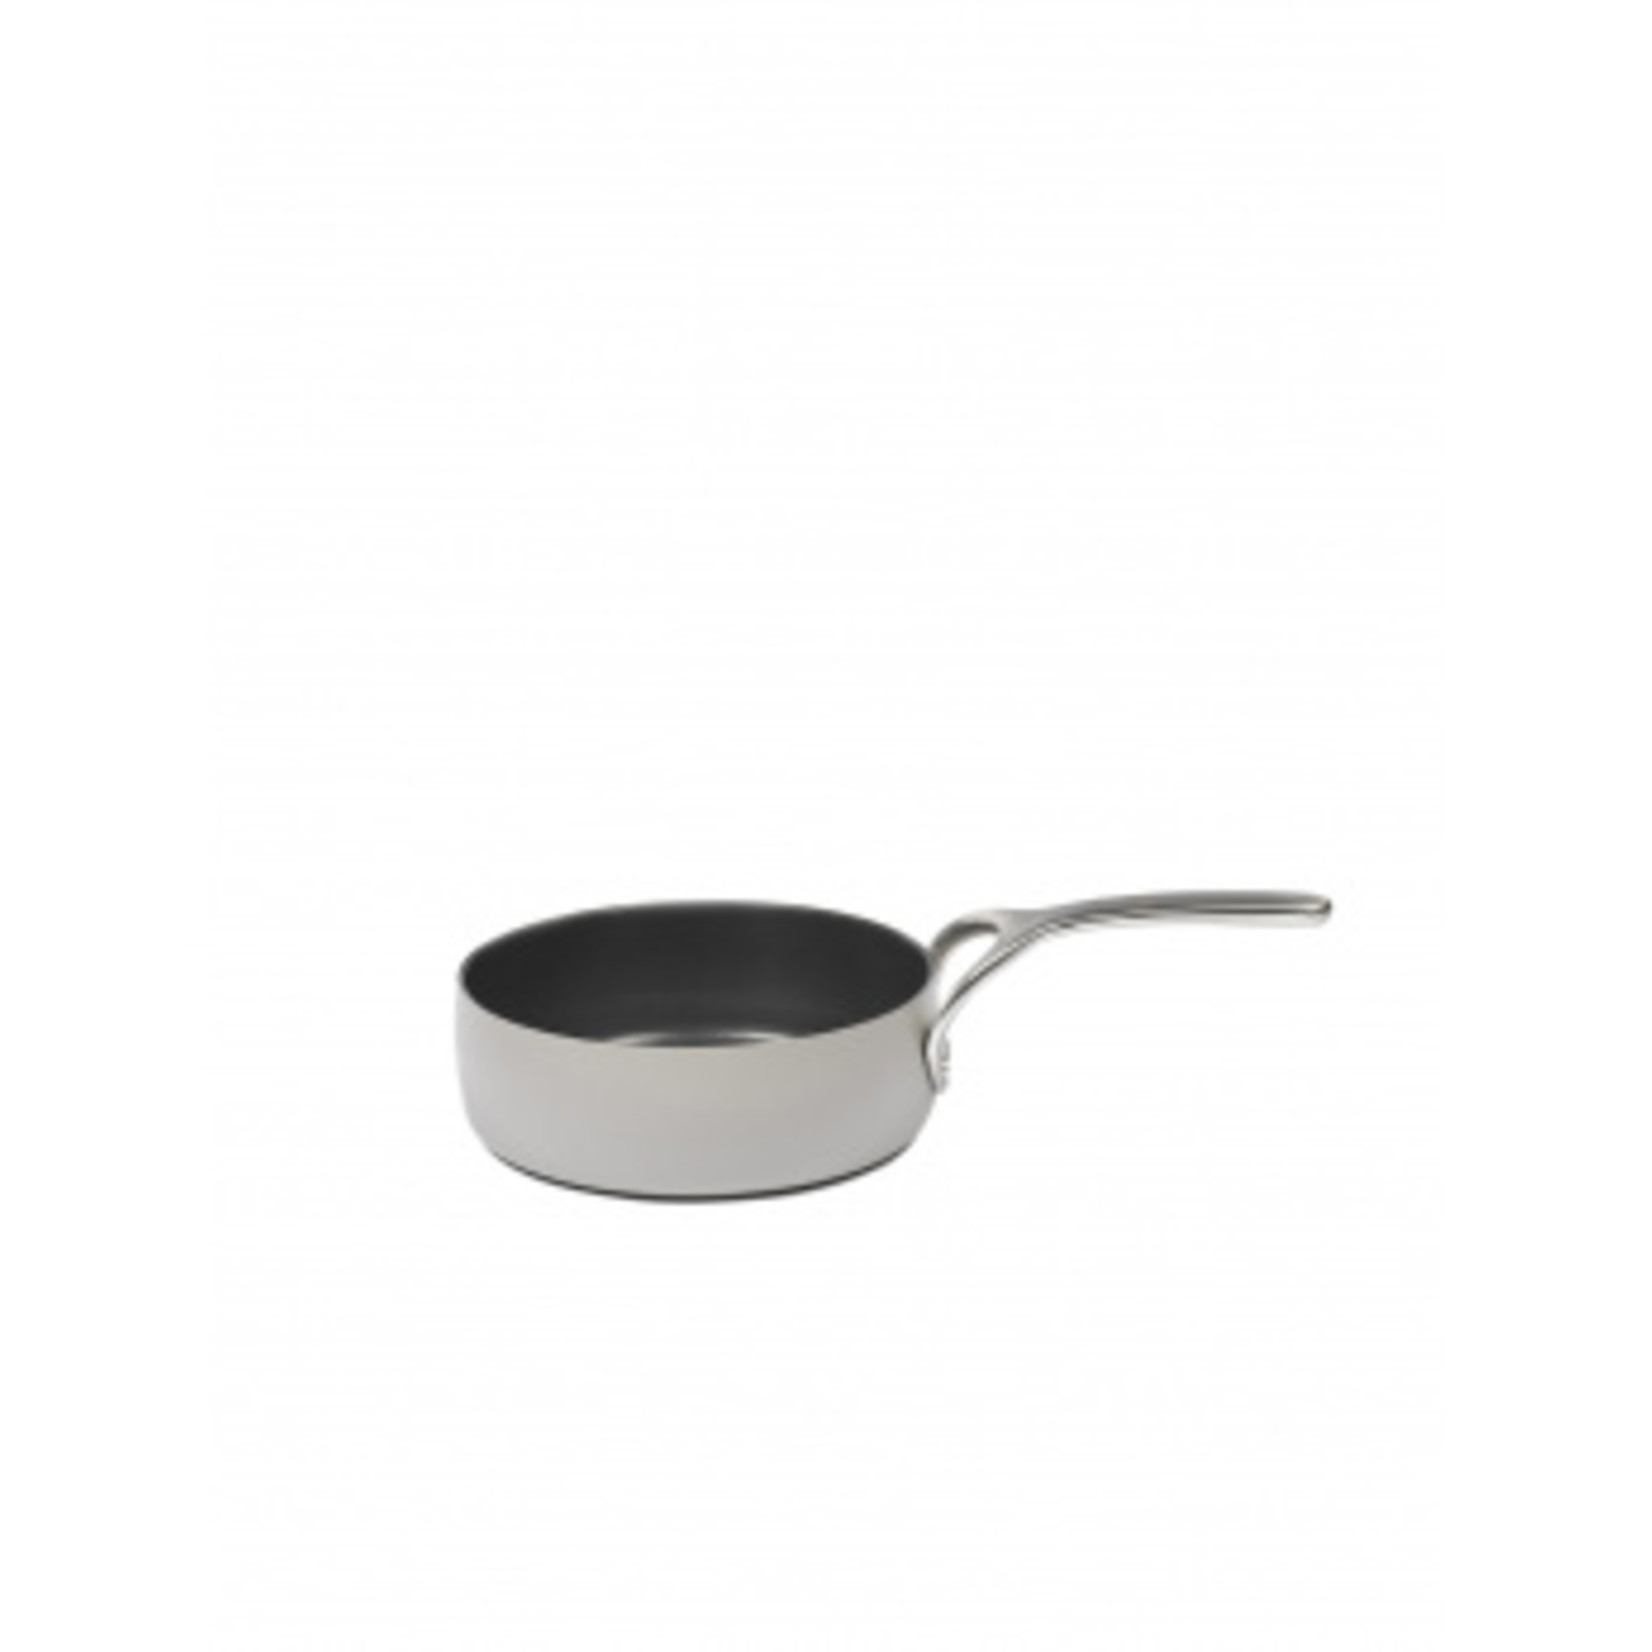 Pascale Naessens collection Pure Anti-kleef braadpan Aluminium 2,1 l